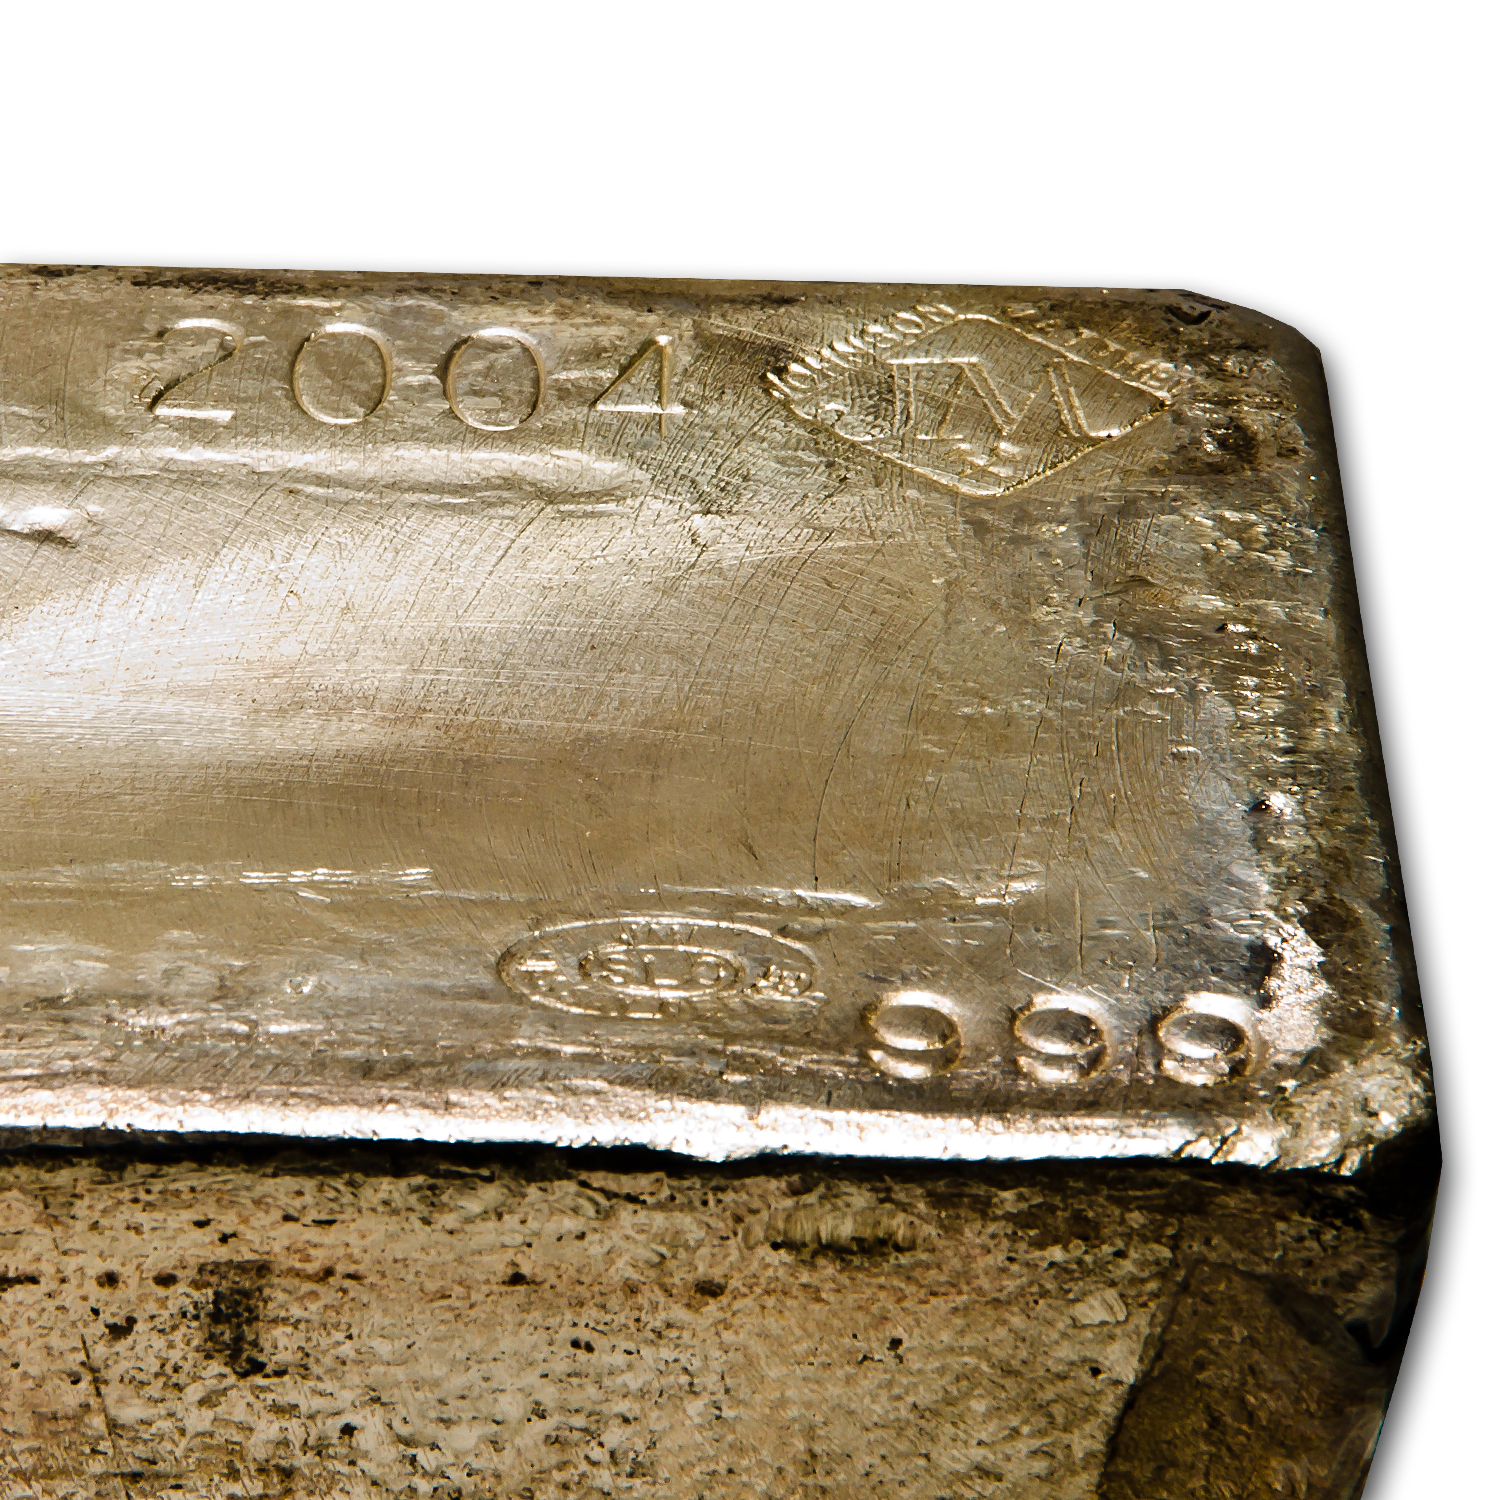 964.40 oz Silver Bars - Johnson Matthey